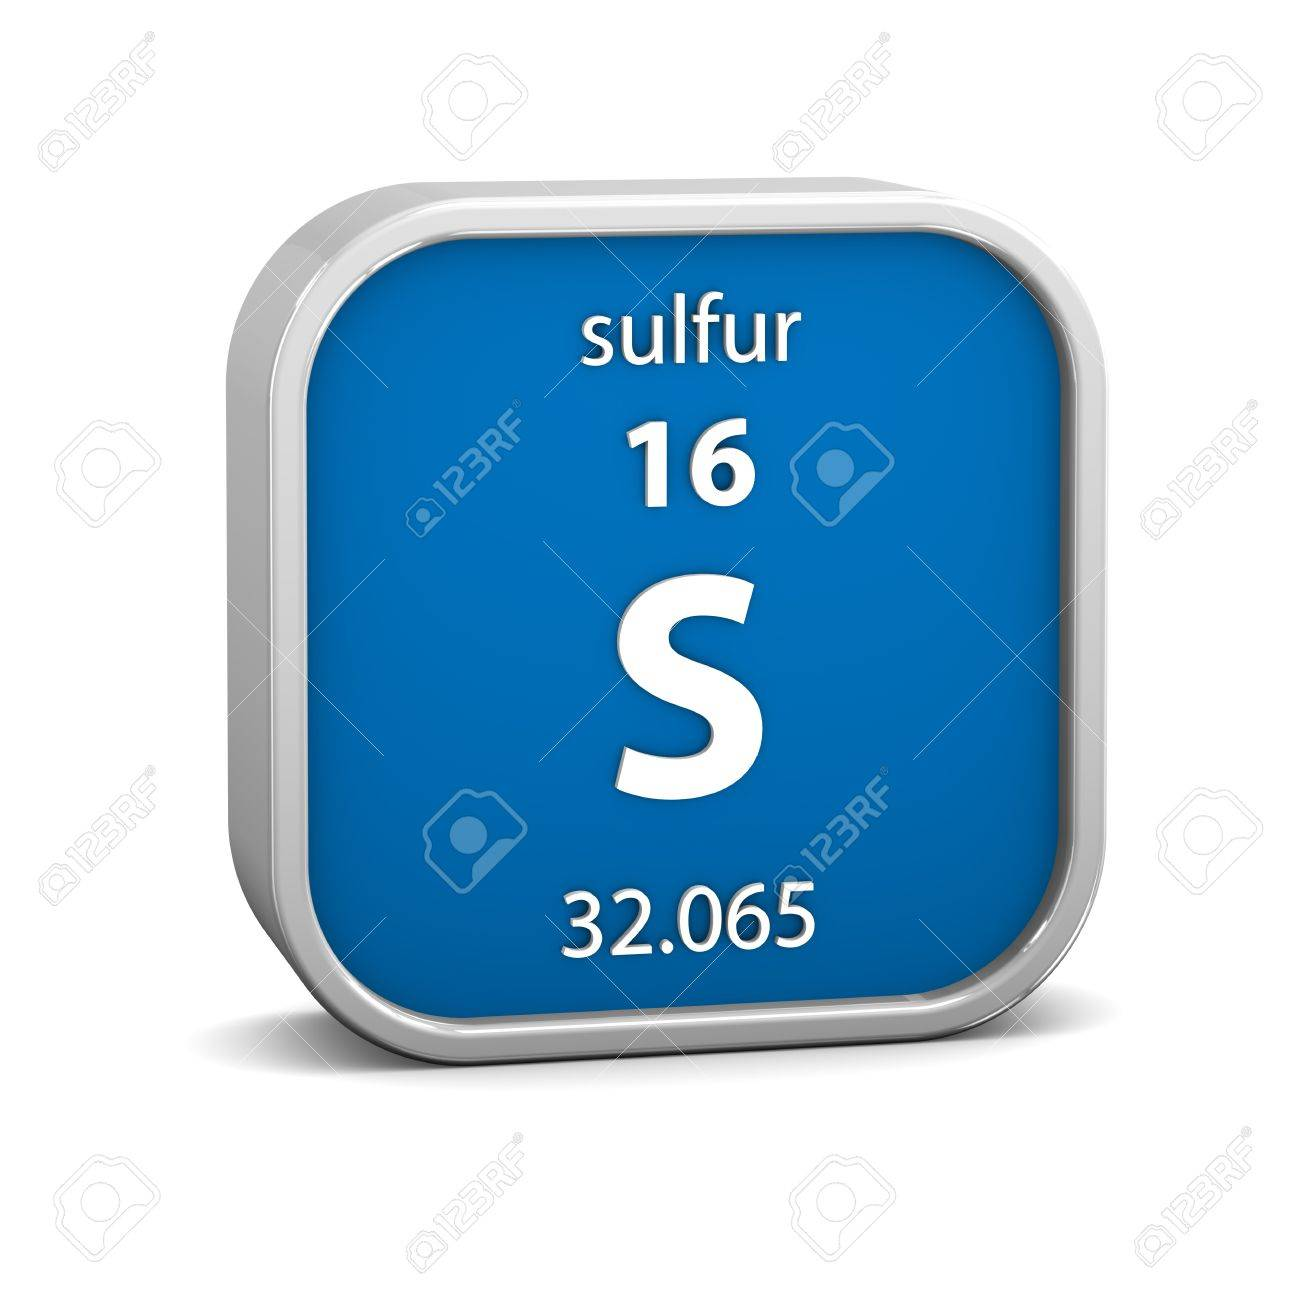 Sulfur on periodic table choice image periodic table images sulfur on periodic table gallery periodic table images sulfur on periodic table image collections periodic table gamestrikefo Gallery